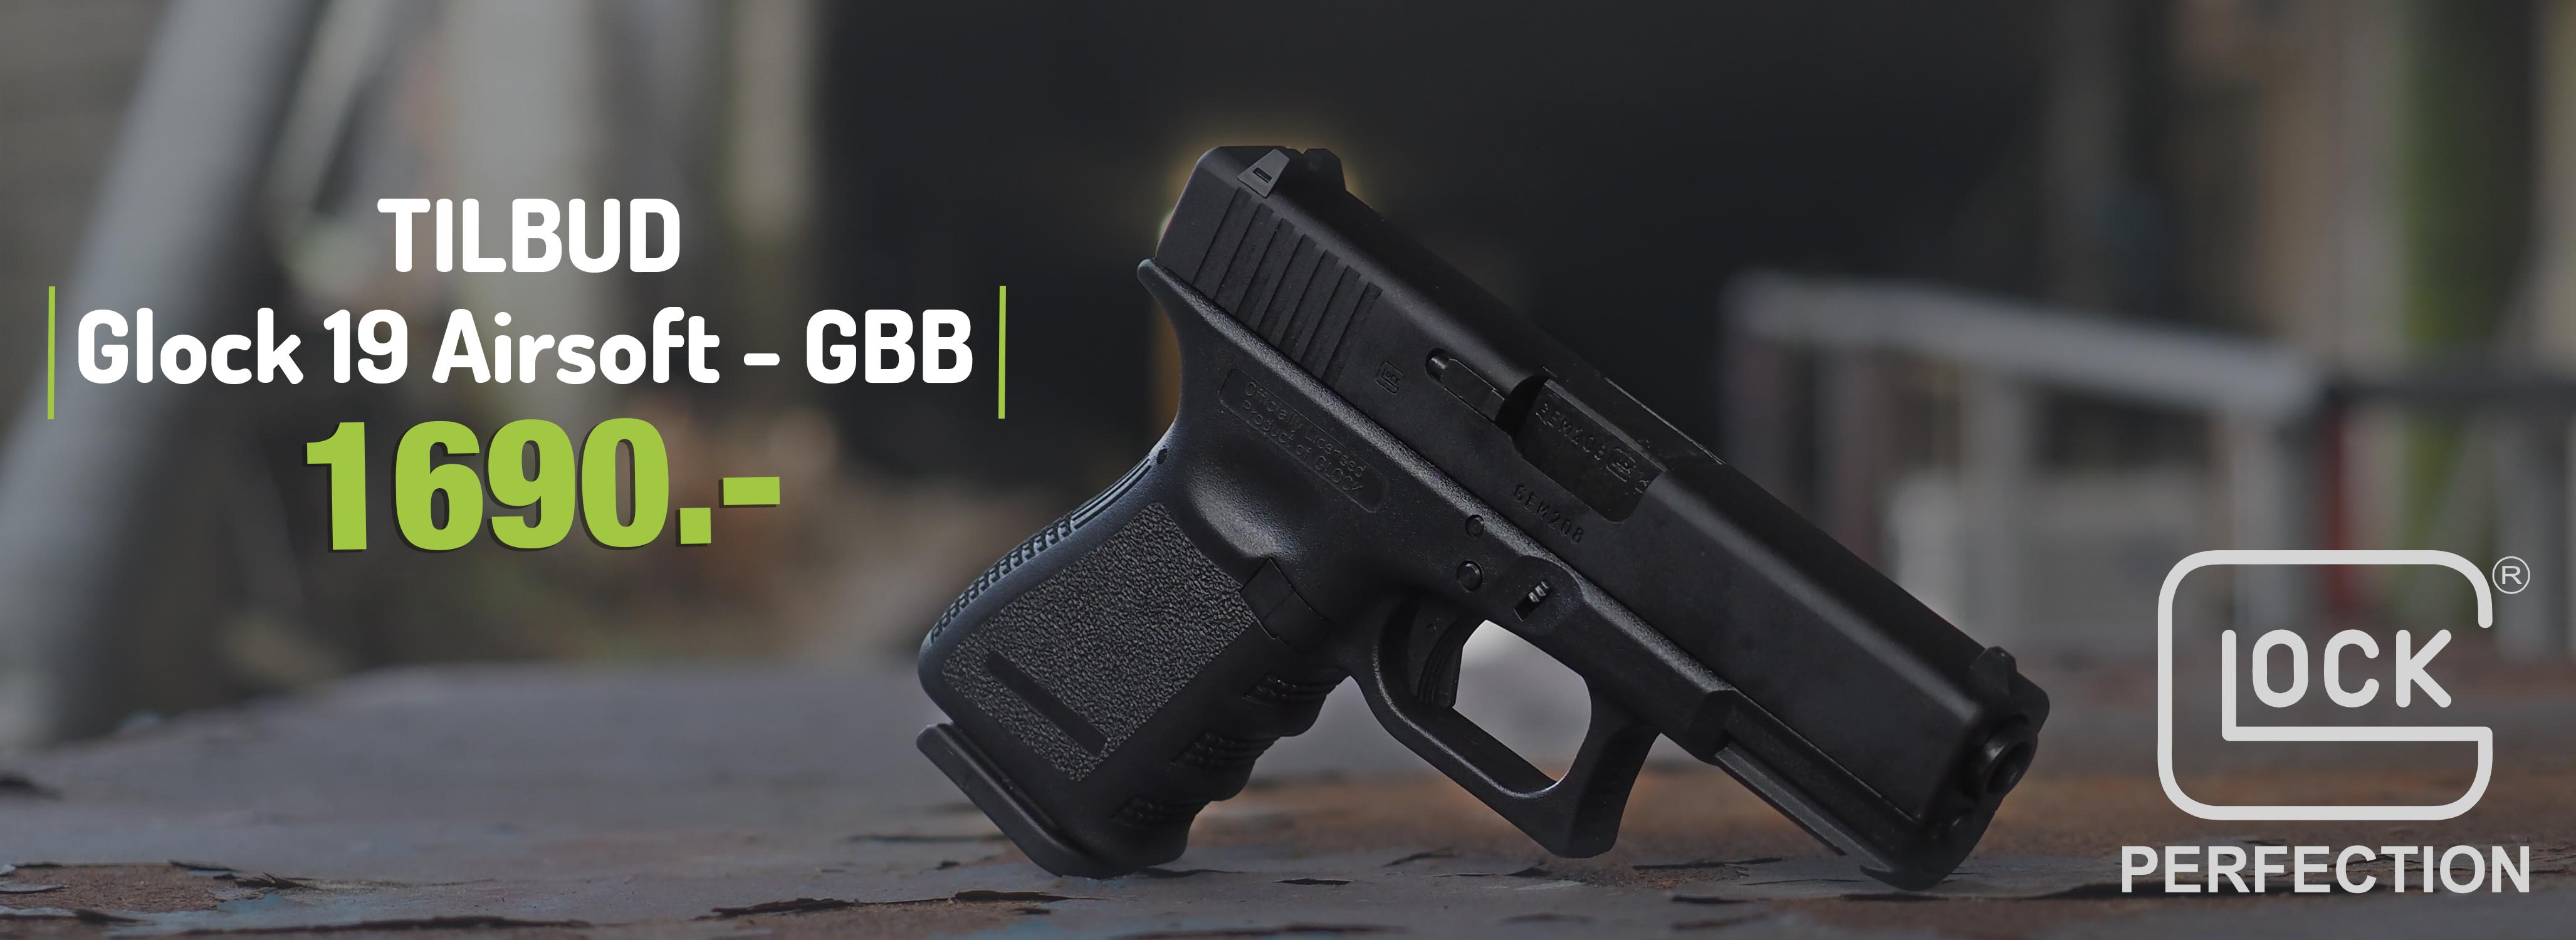 Glock 19 - Gass softgun med blowback